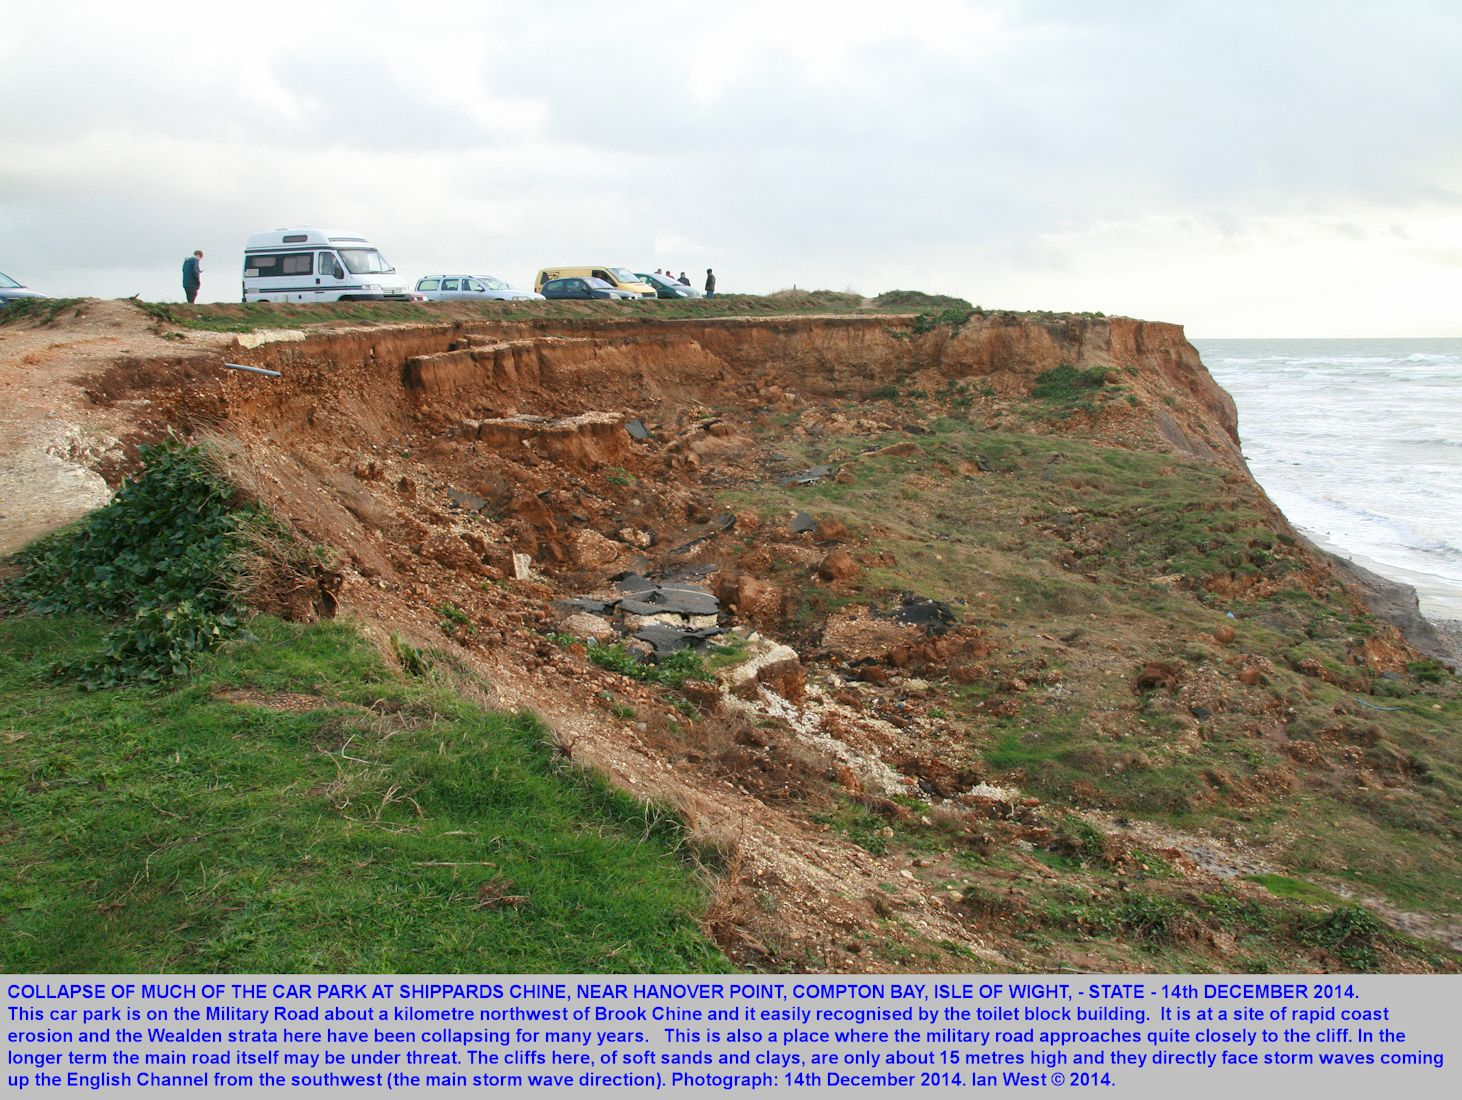 The collapsed state of part of the car park at Shippards Chine, Compton Bay, Isle of Wight, as a result of continued coast erosion here - 14th December 2014